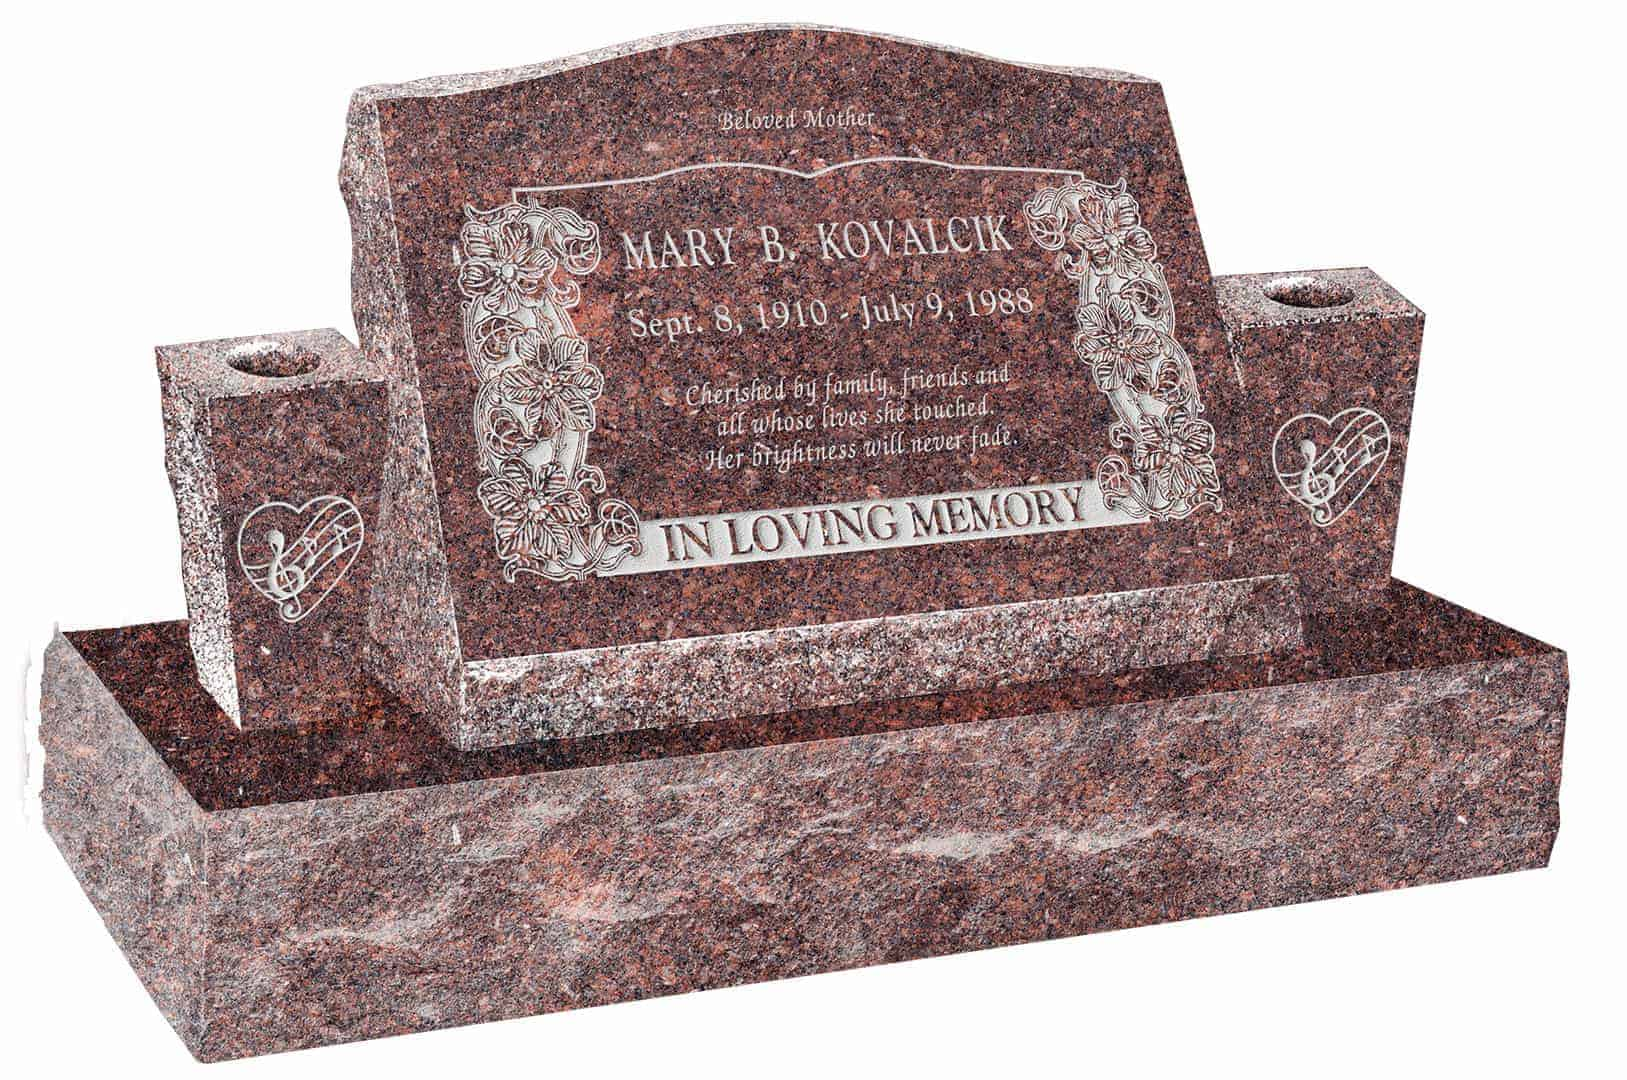 24 x 10 x 16 serp top slant headstone polished front and back 24 x 10 x 16 serp top slant headstone polished front and back with 36 base and two square tapered vases reviewsmspy